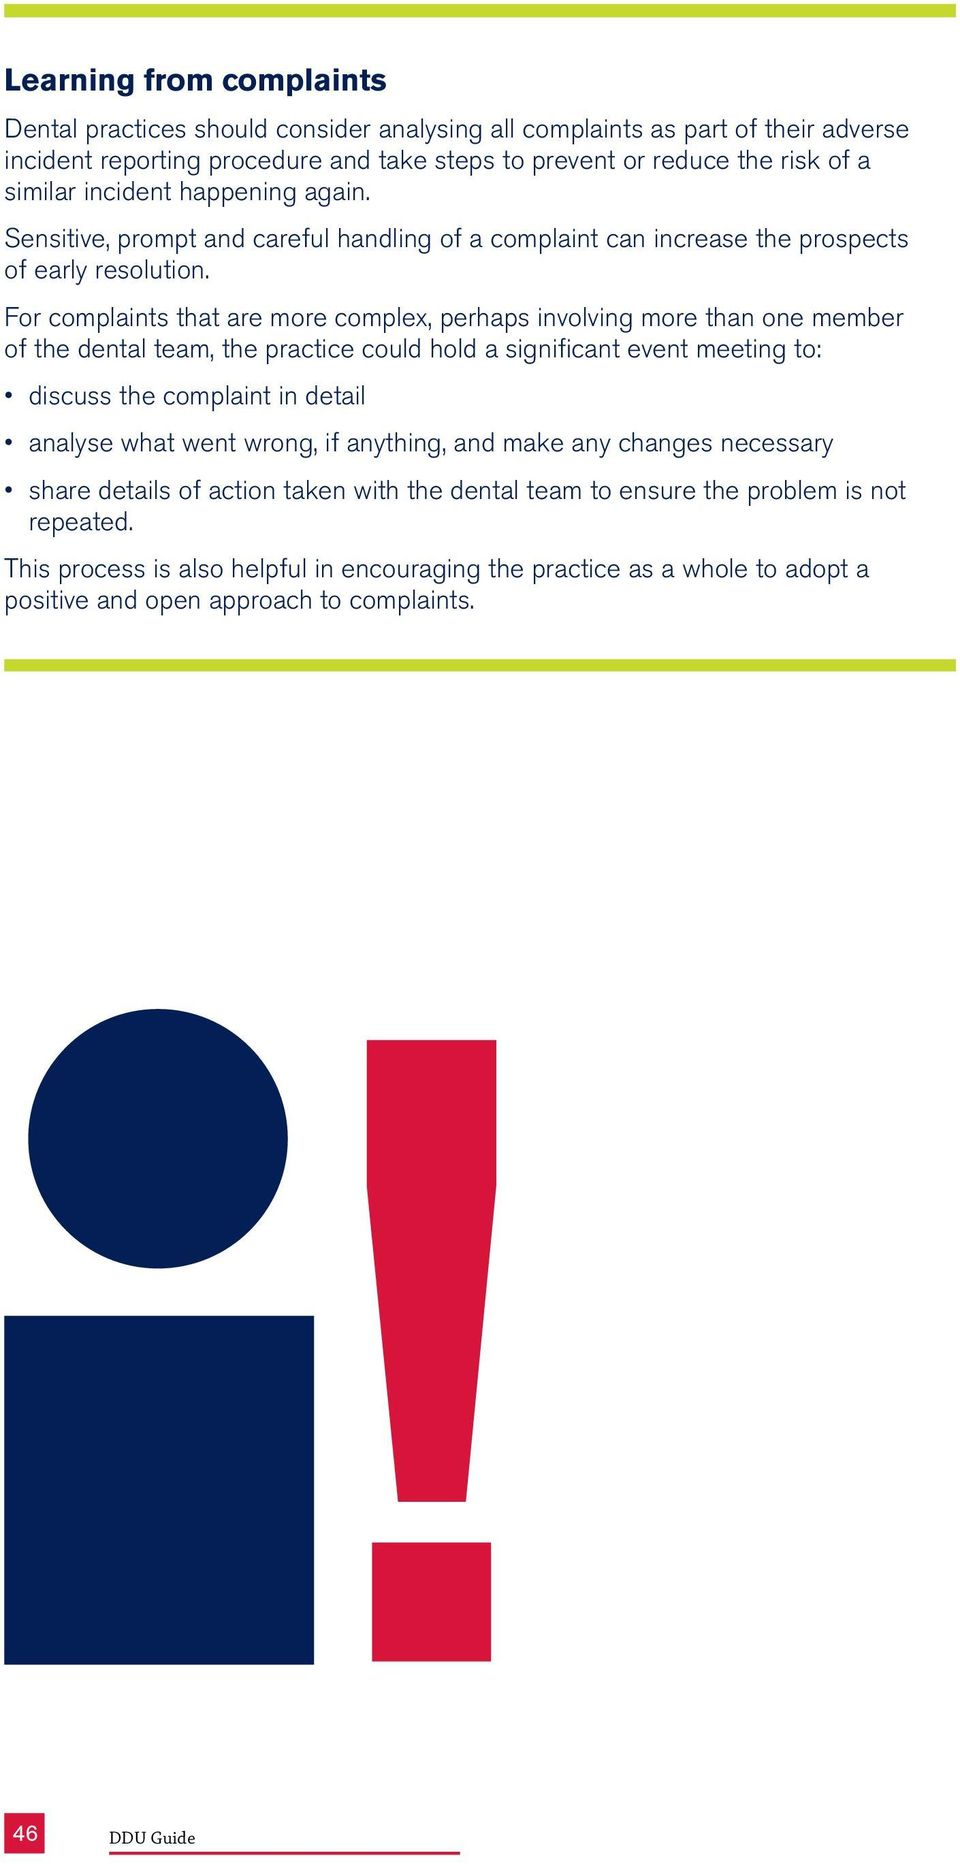 For complaints that are more complex, perhaps involving more than one member of the dental team, the practice could hold a significant event meeting to: discuss the complaint in detail analyse what